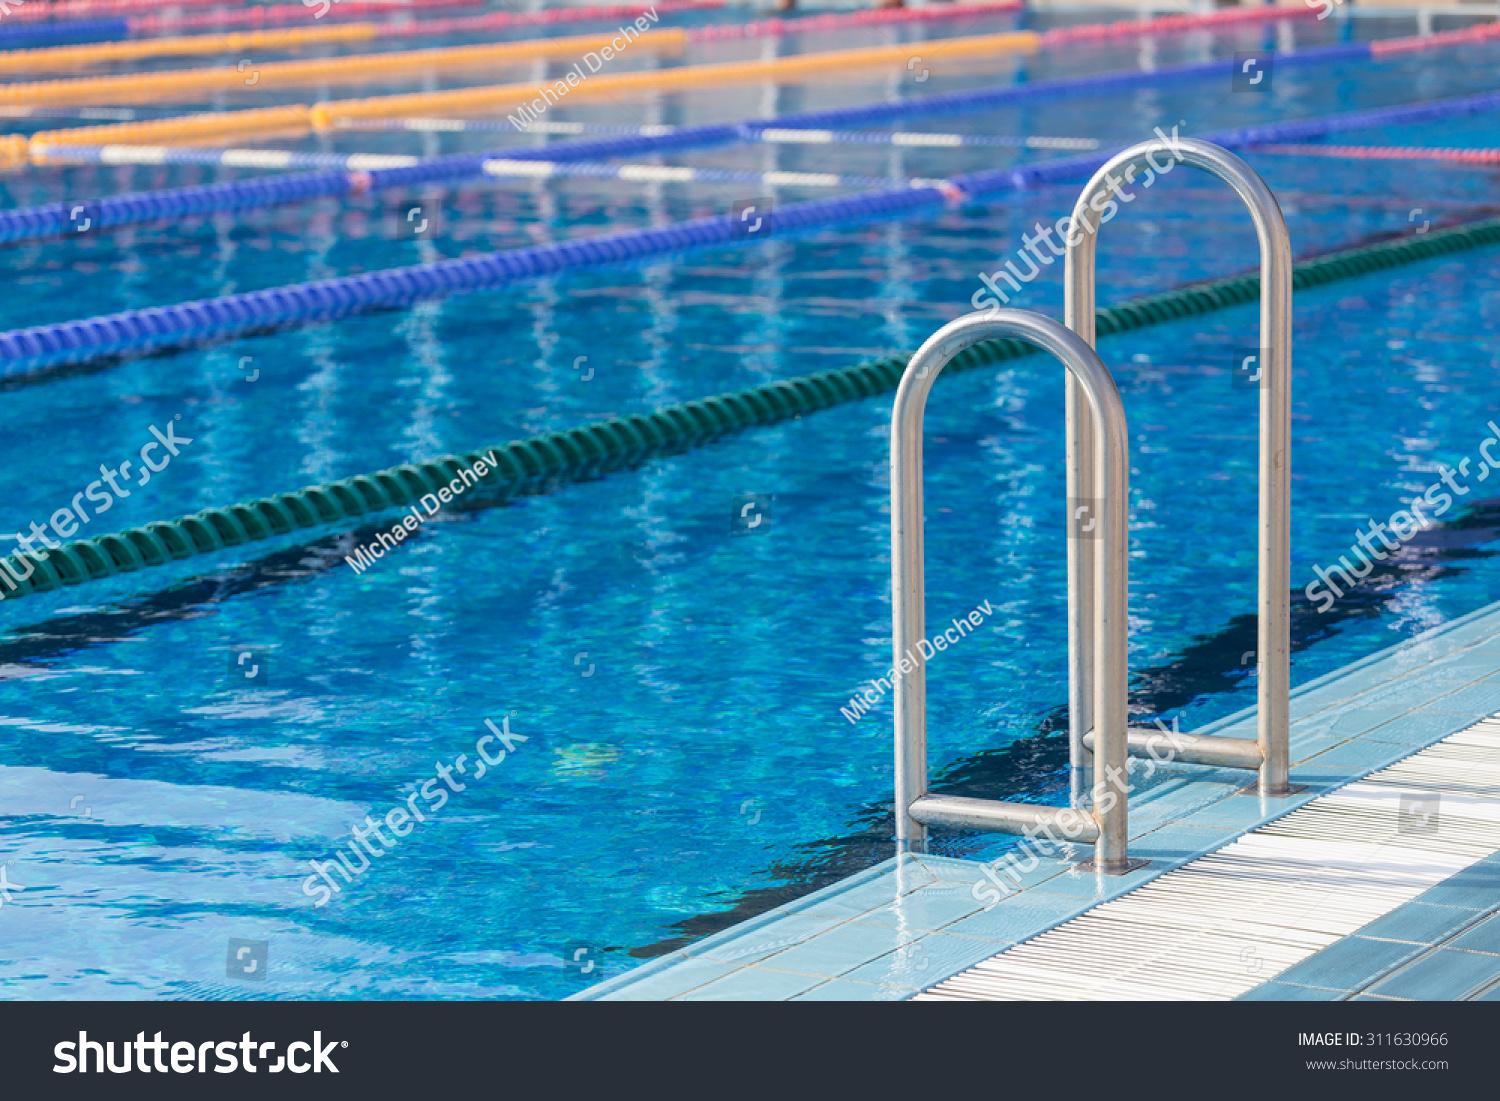 Detail Olympic Swimming Pool Swim Lanes Stock Photo 311630966 Shutterstock